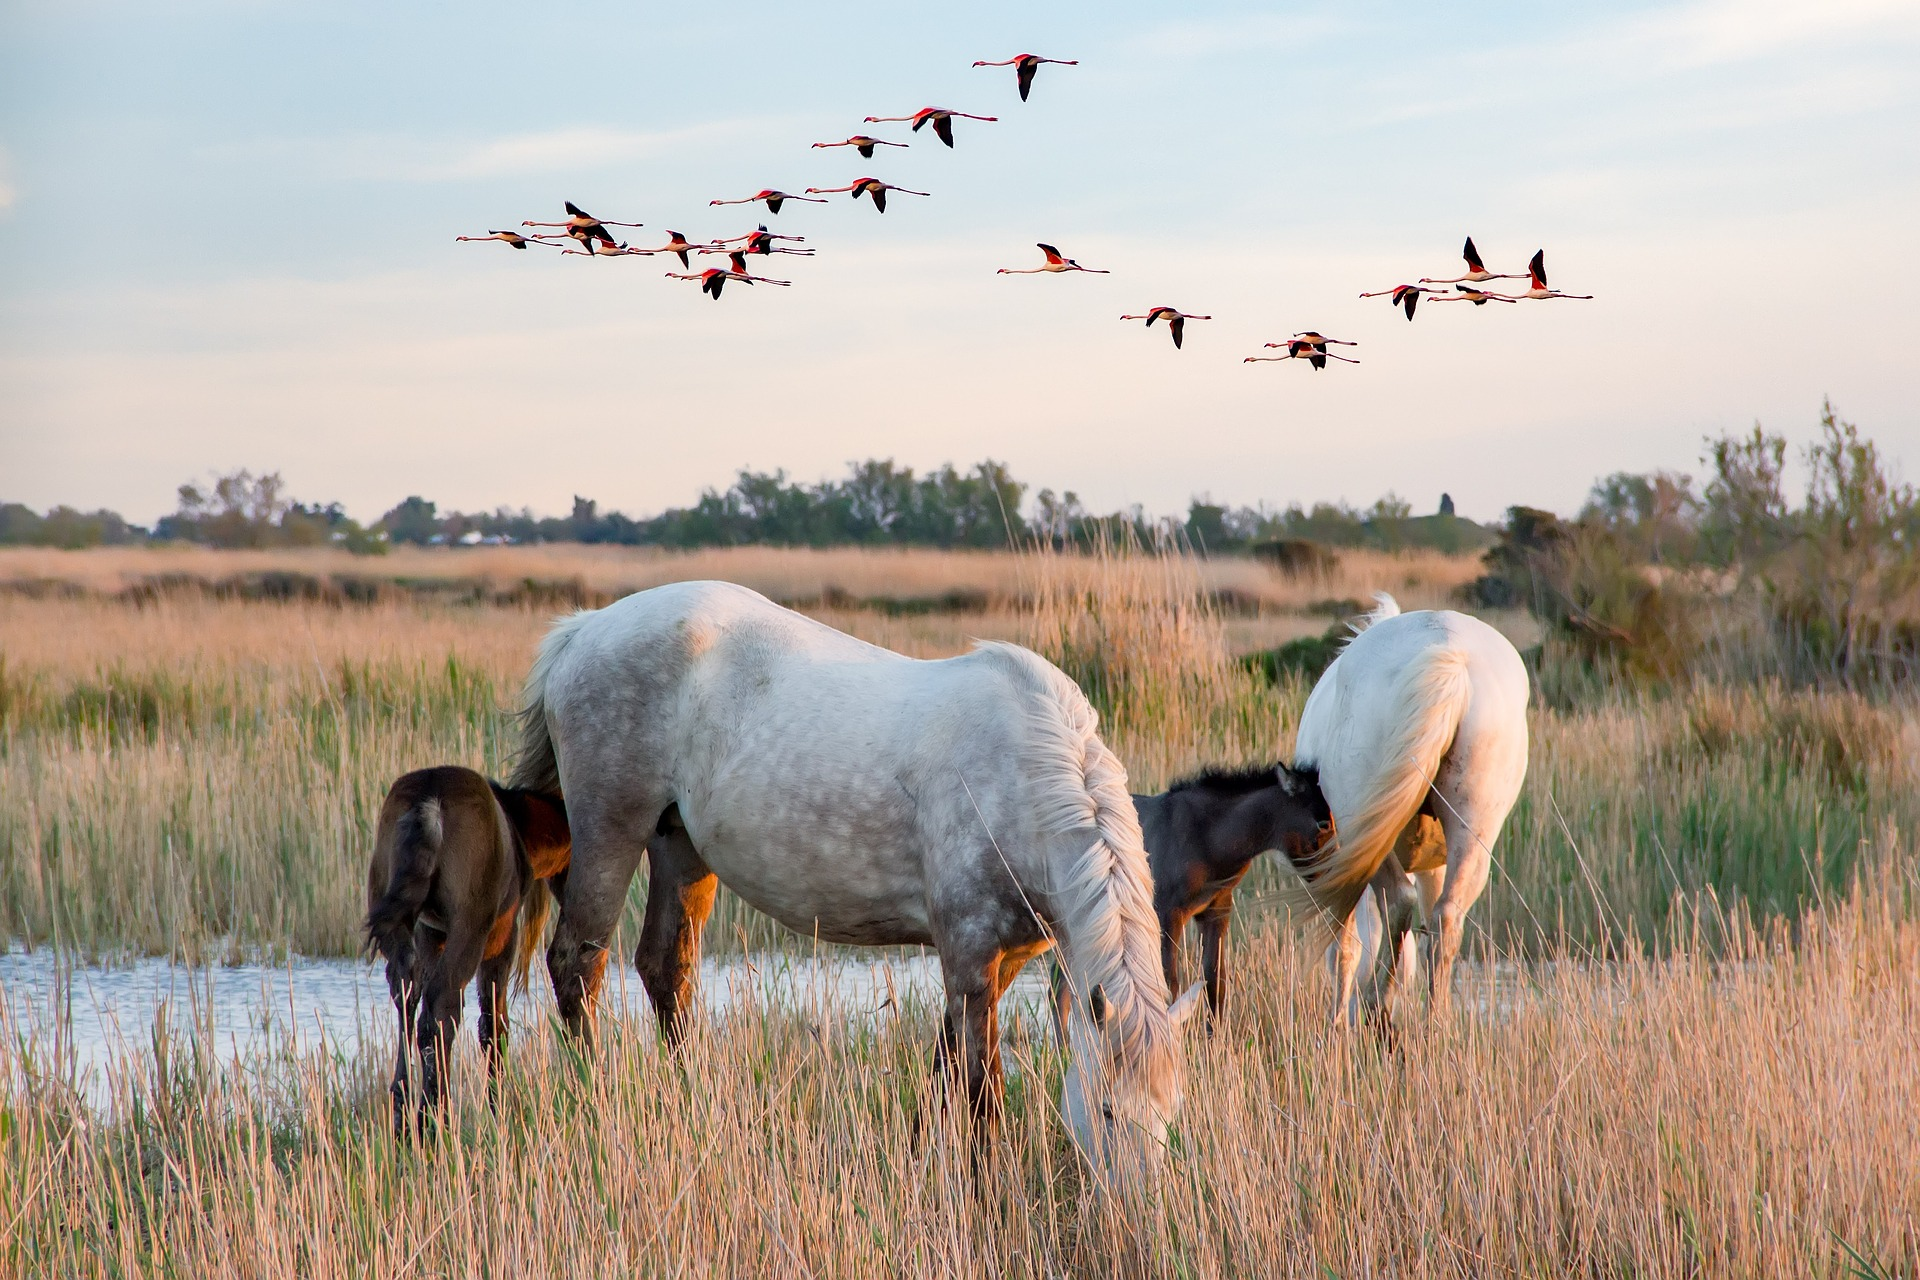 scene-of-the-camargue-6-2493873_1920